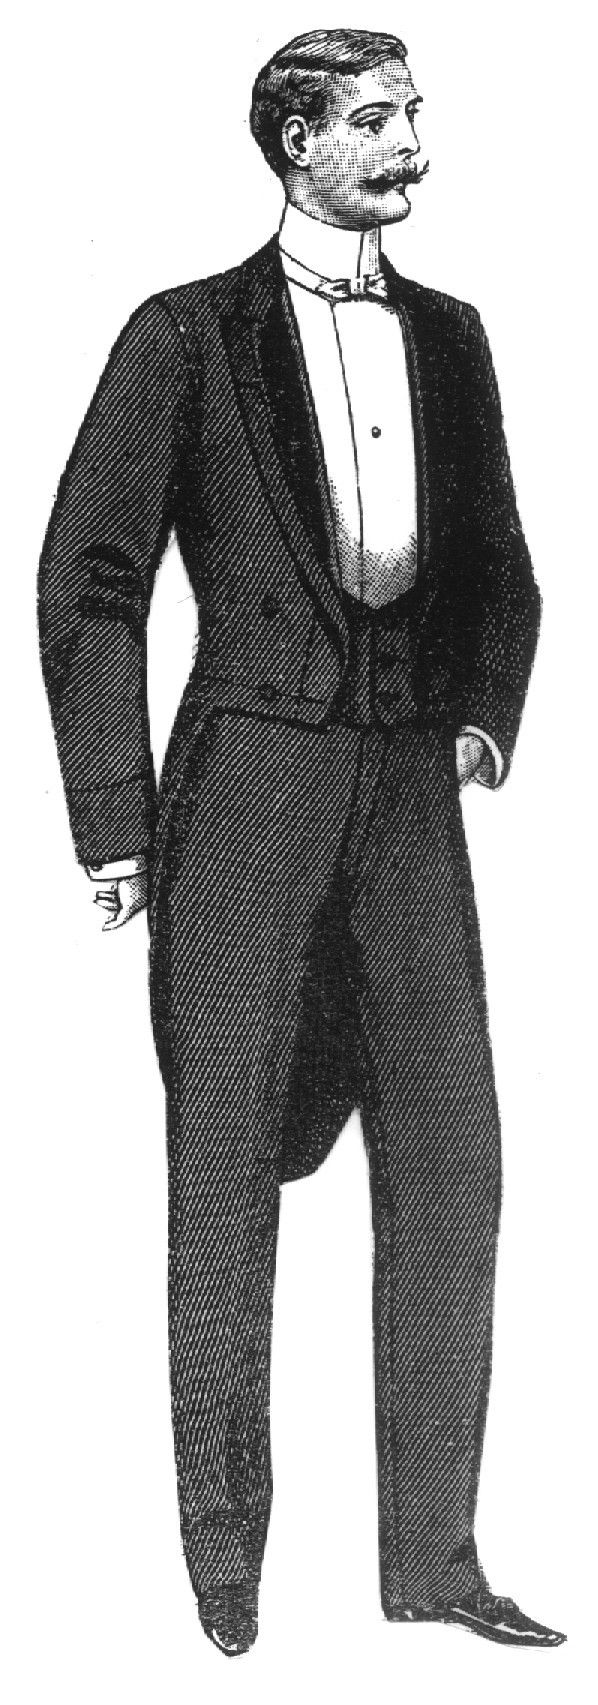 Drawn suit tailcoat Other among Men worn tailcoat